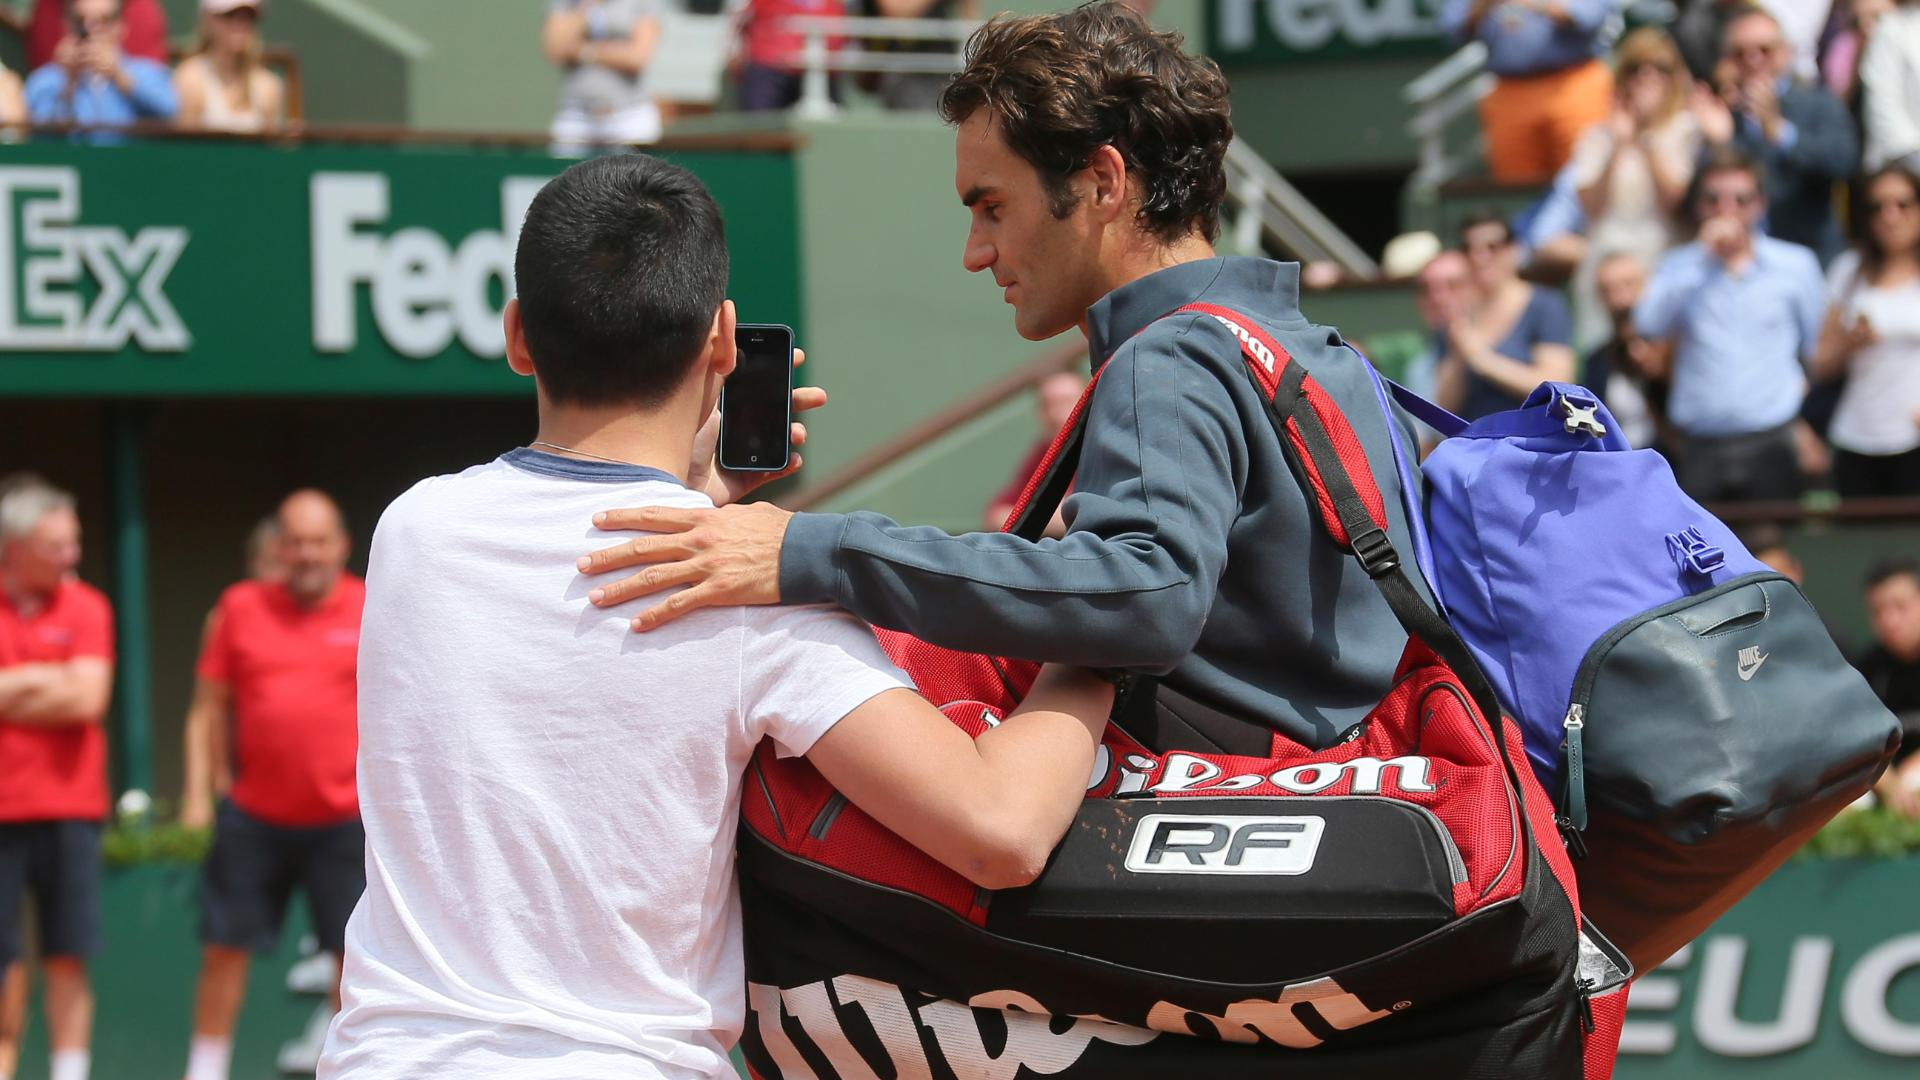 Federer angry about selfie-seeking fan on court